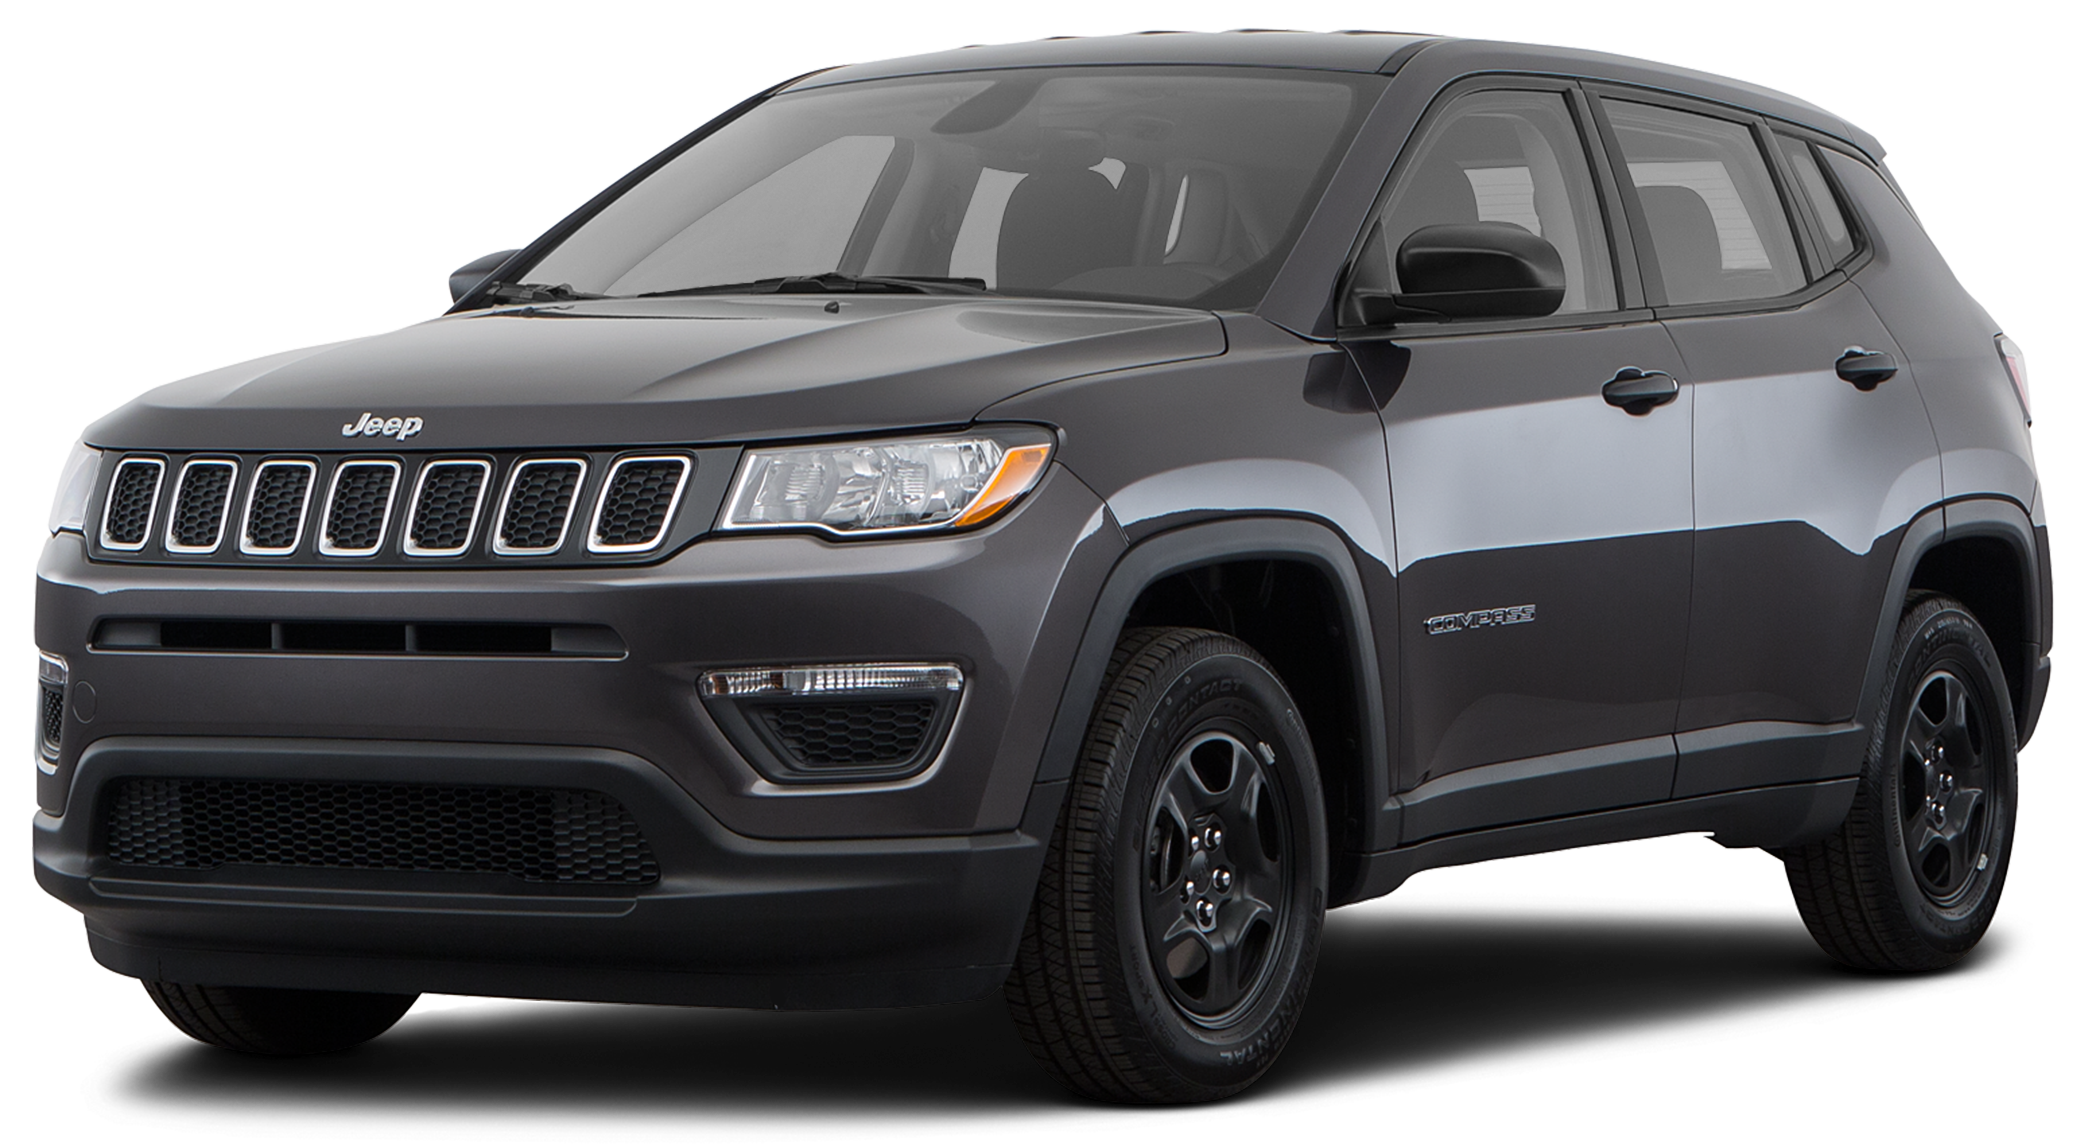 2020 Jeep Compass Lease Deals & Specials Finance Offers in ...